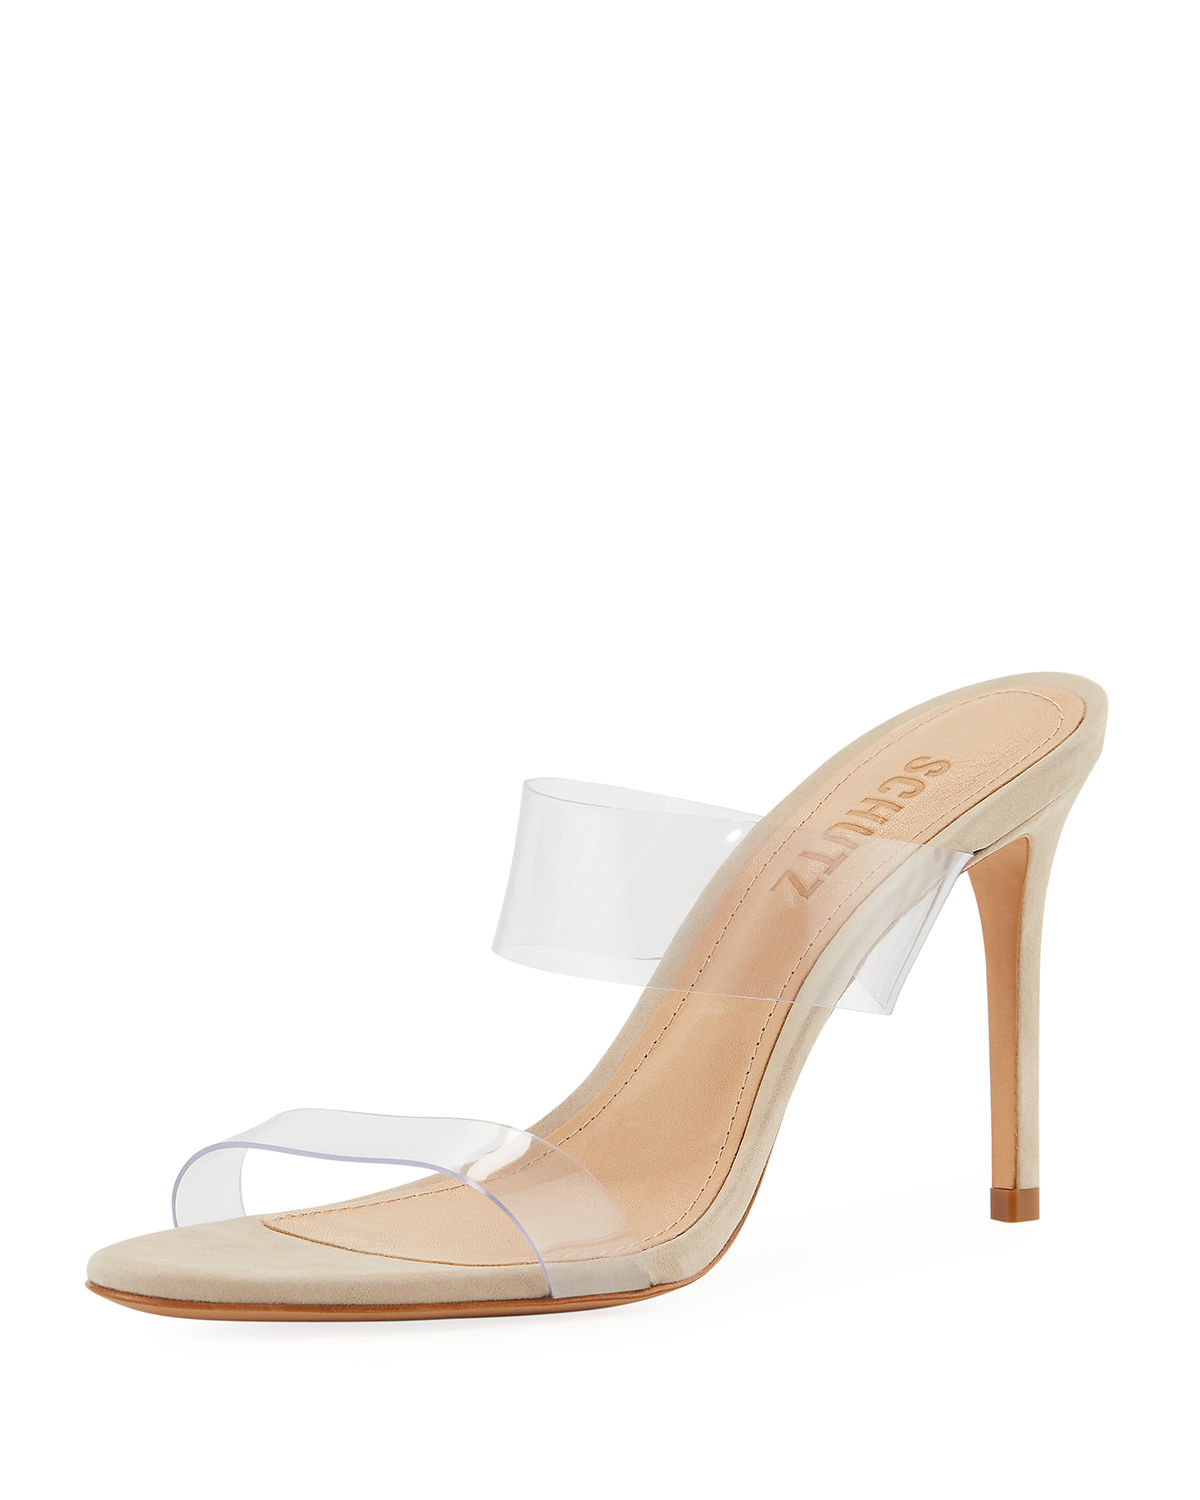 d57365e592b Schutz Women s Ariella Clear Strap High-Heel Slide Sandals In  Beige Transparent Vinyl Fabric